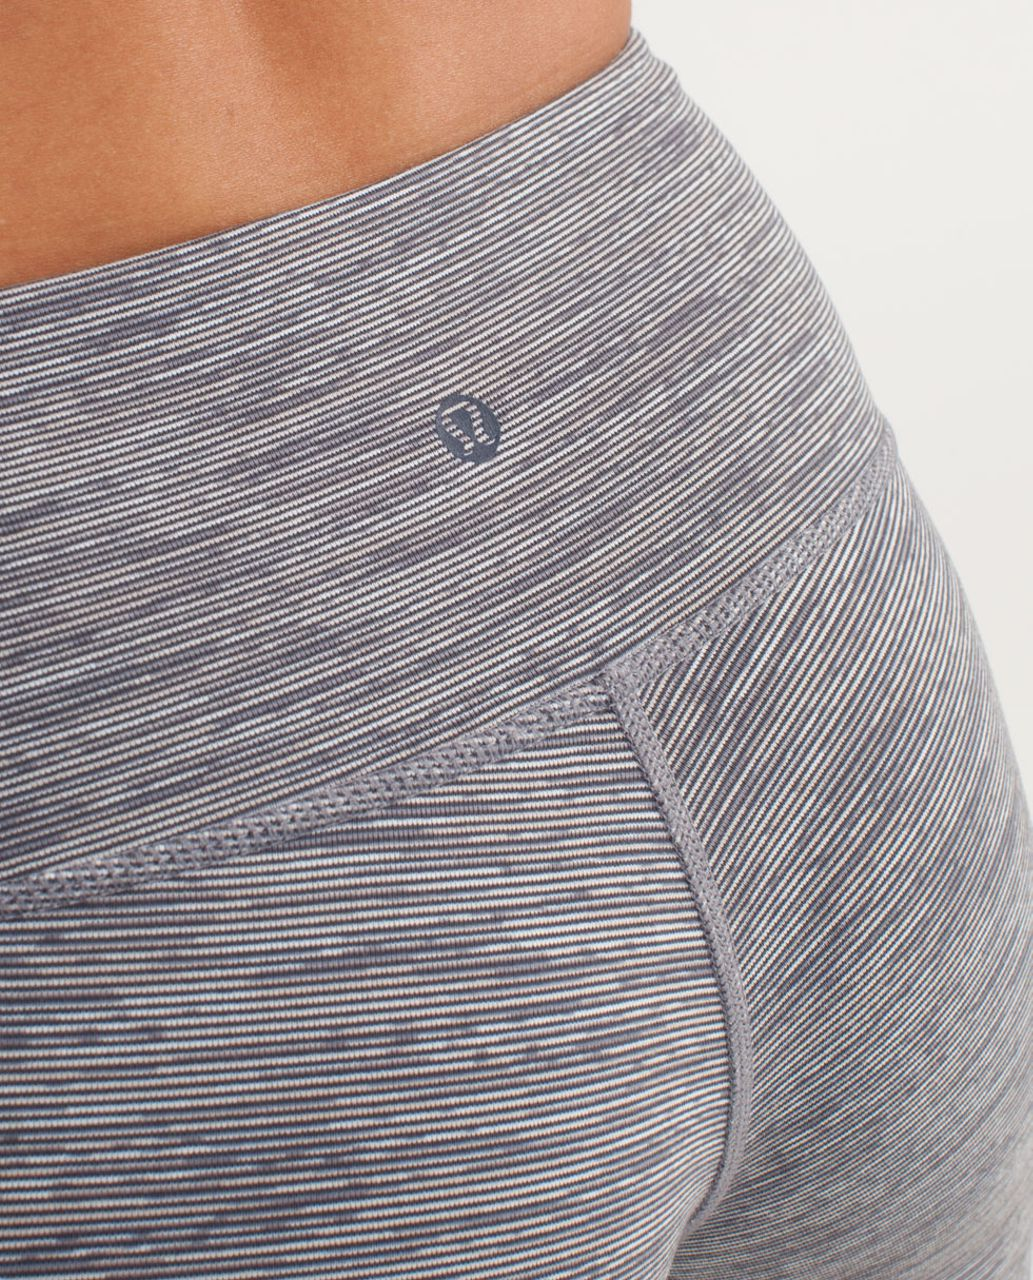 Lululemon Wunder Under Crop *Special Edition - Wee Are From Space Coal Fossil